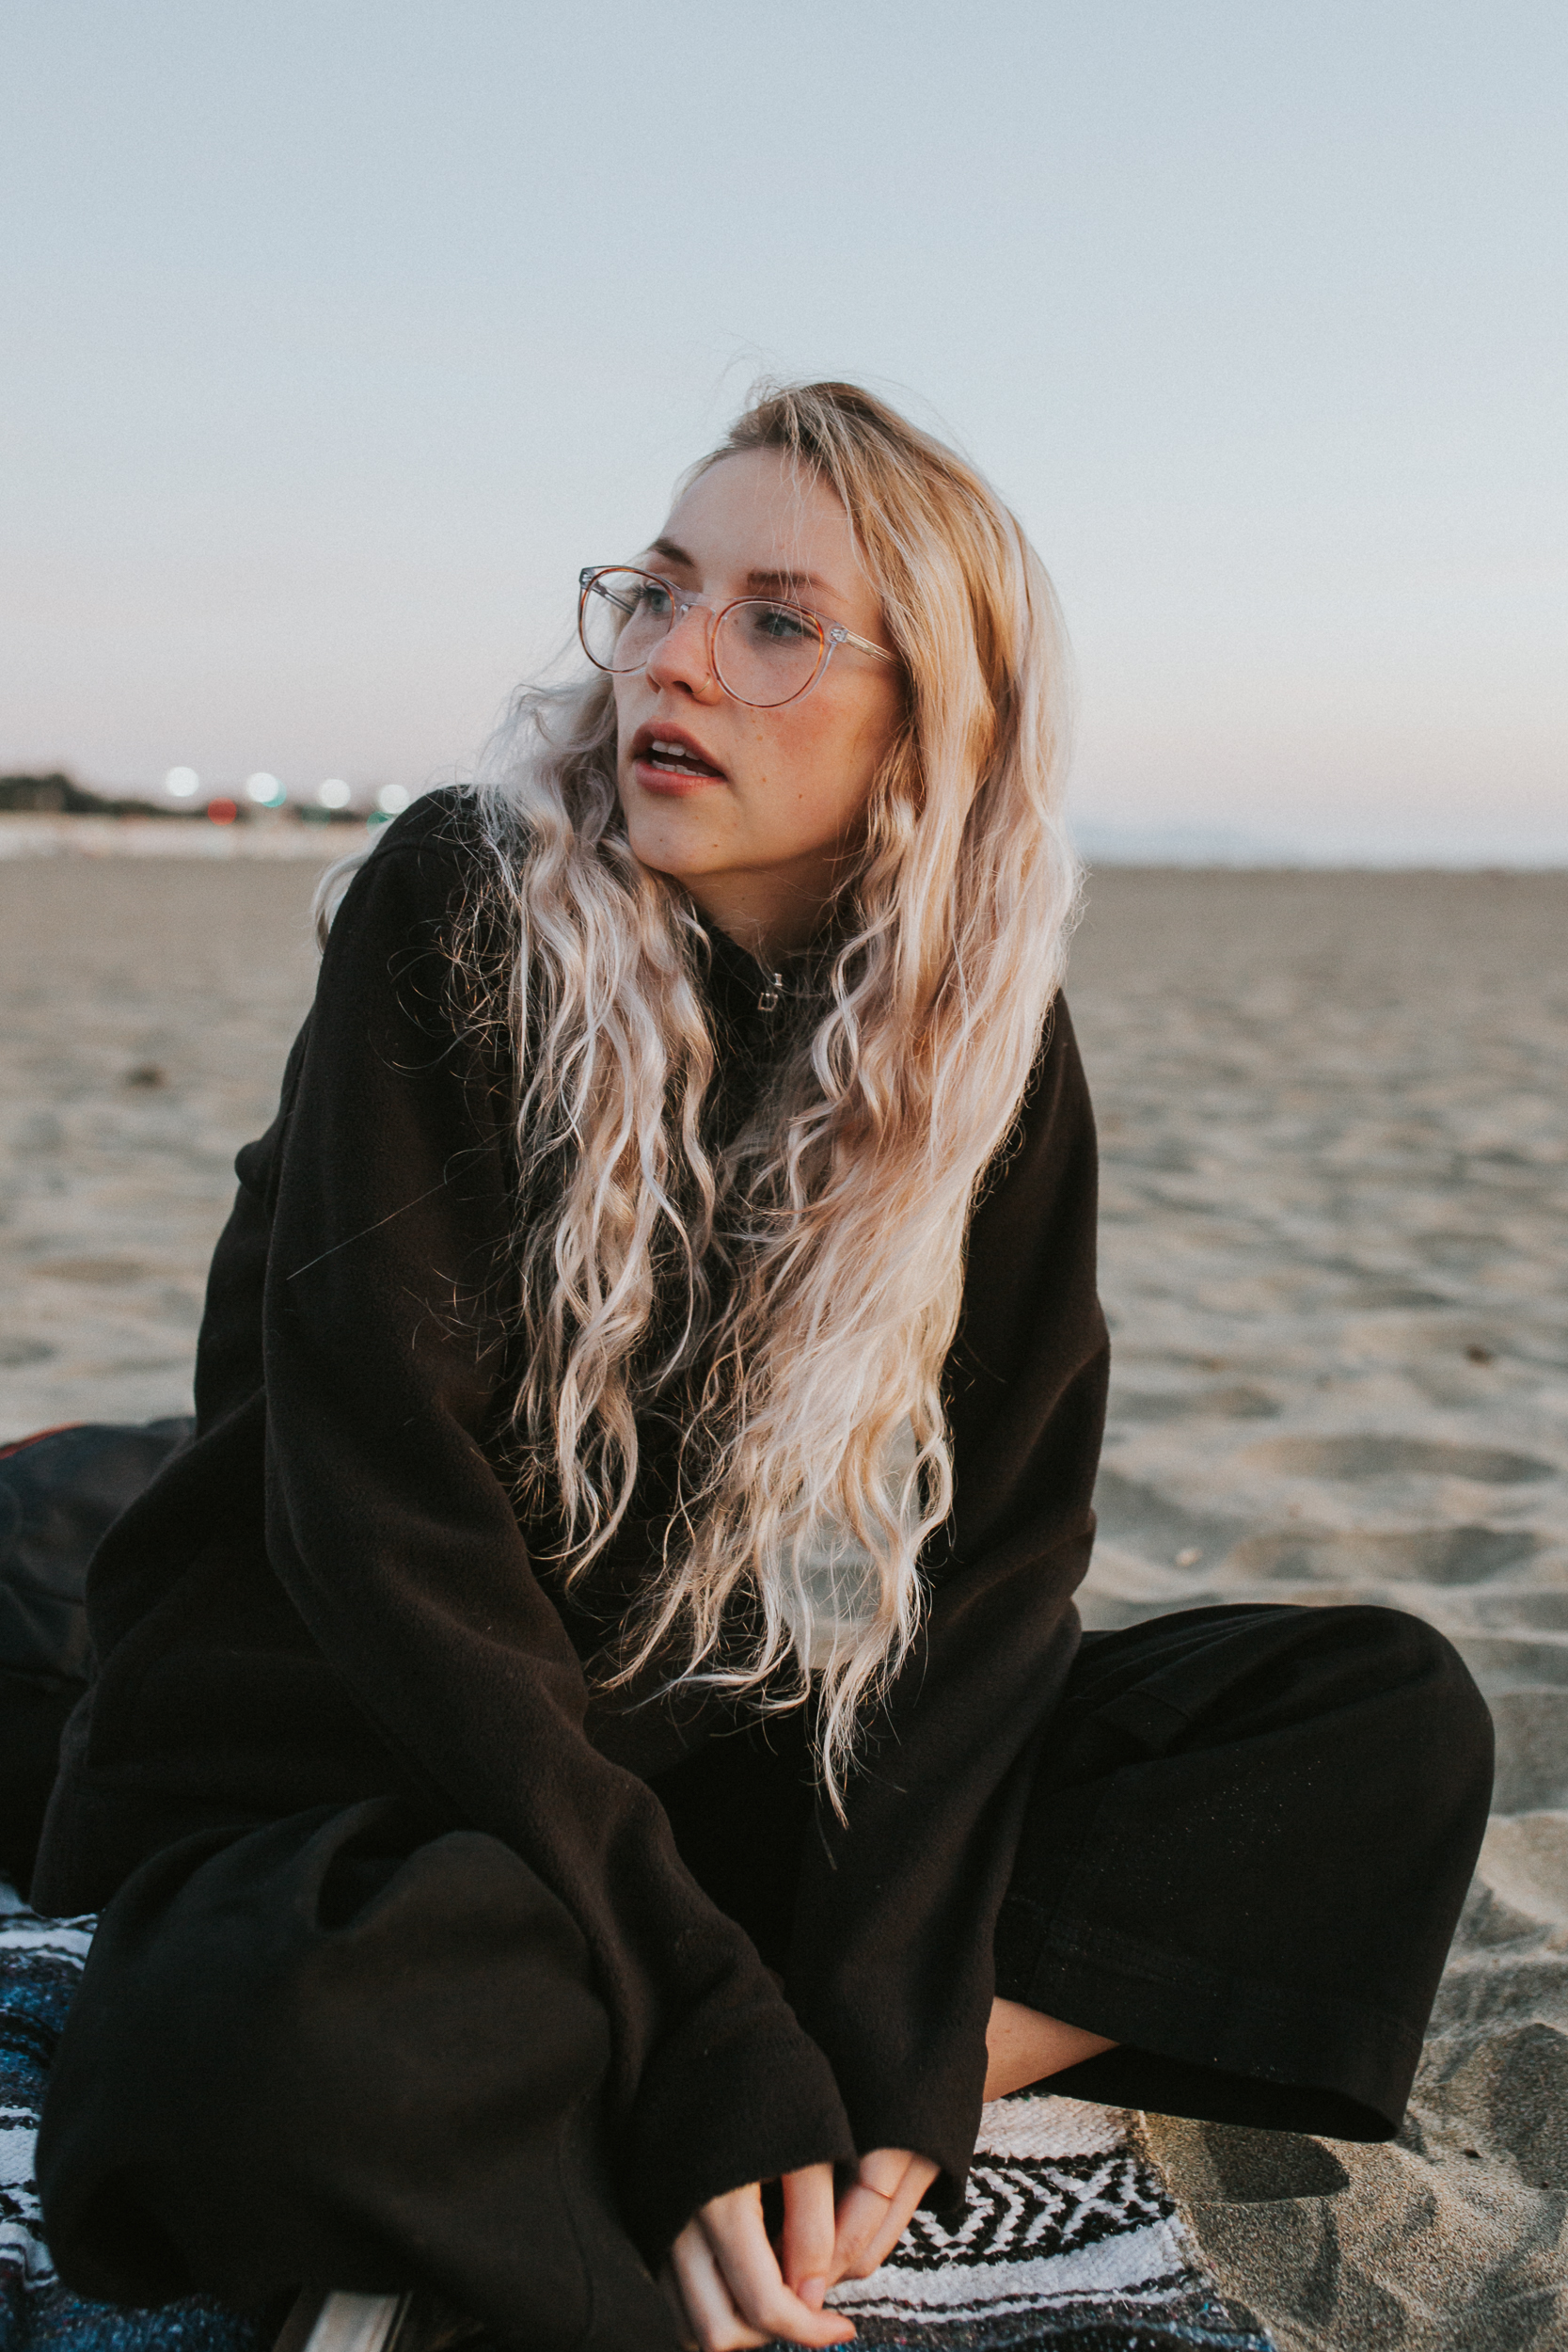 San Francisco chill beach shoot